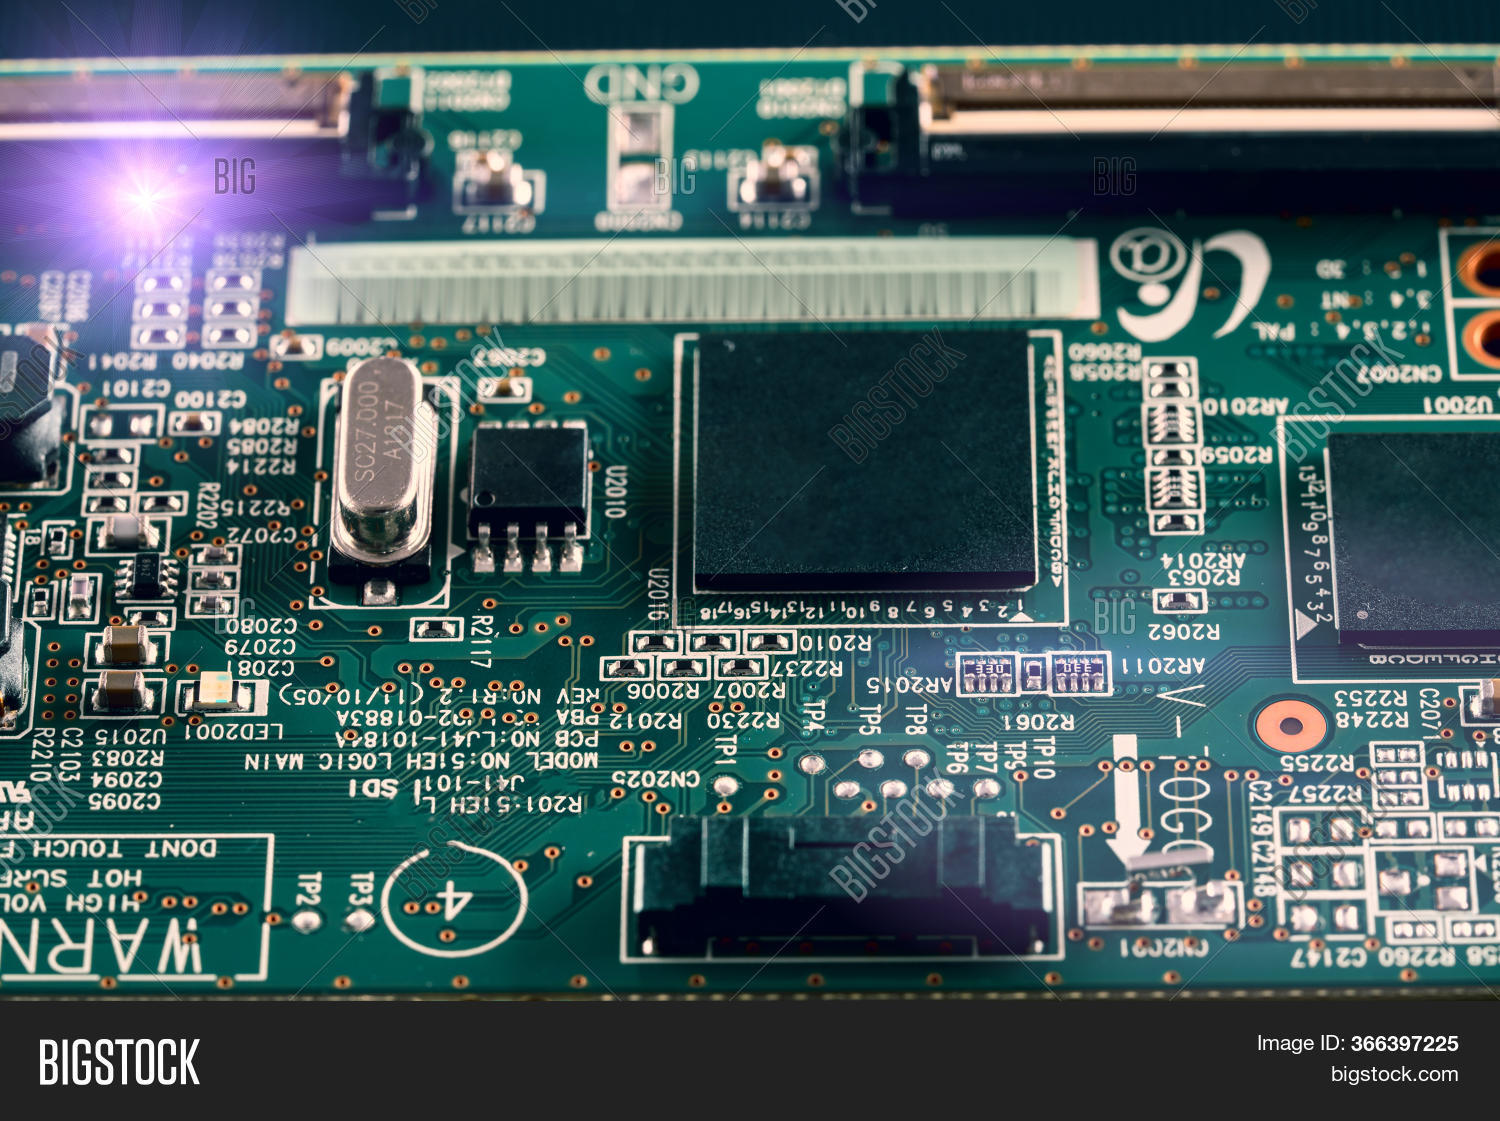 Microcontroller Pcb. Image & Photo (Free Trial) | Bigstock